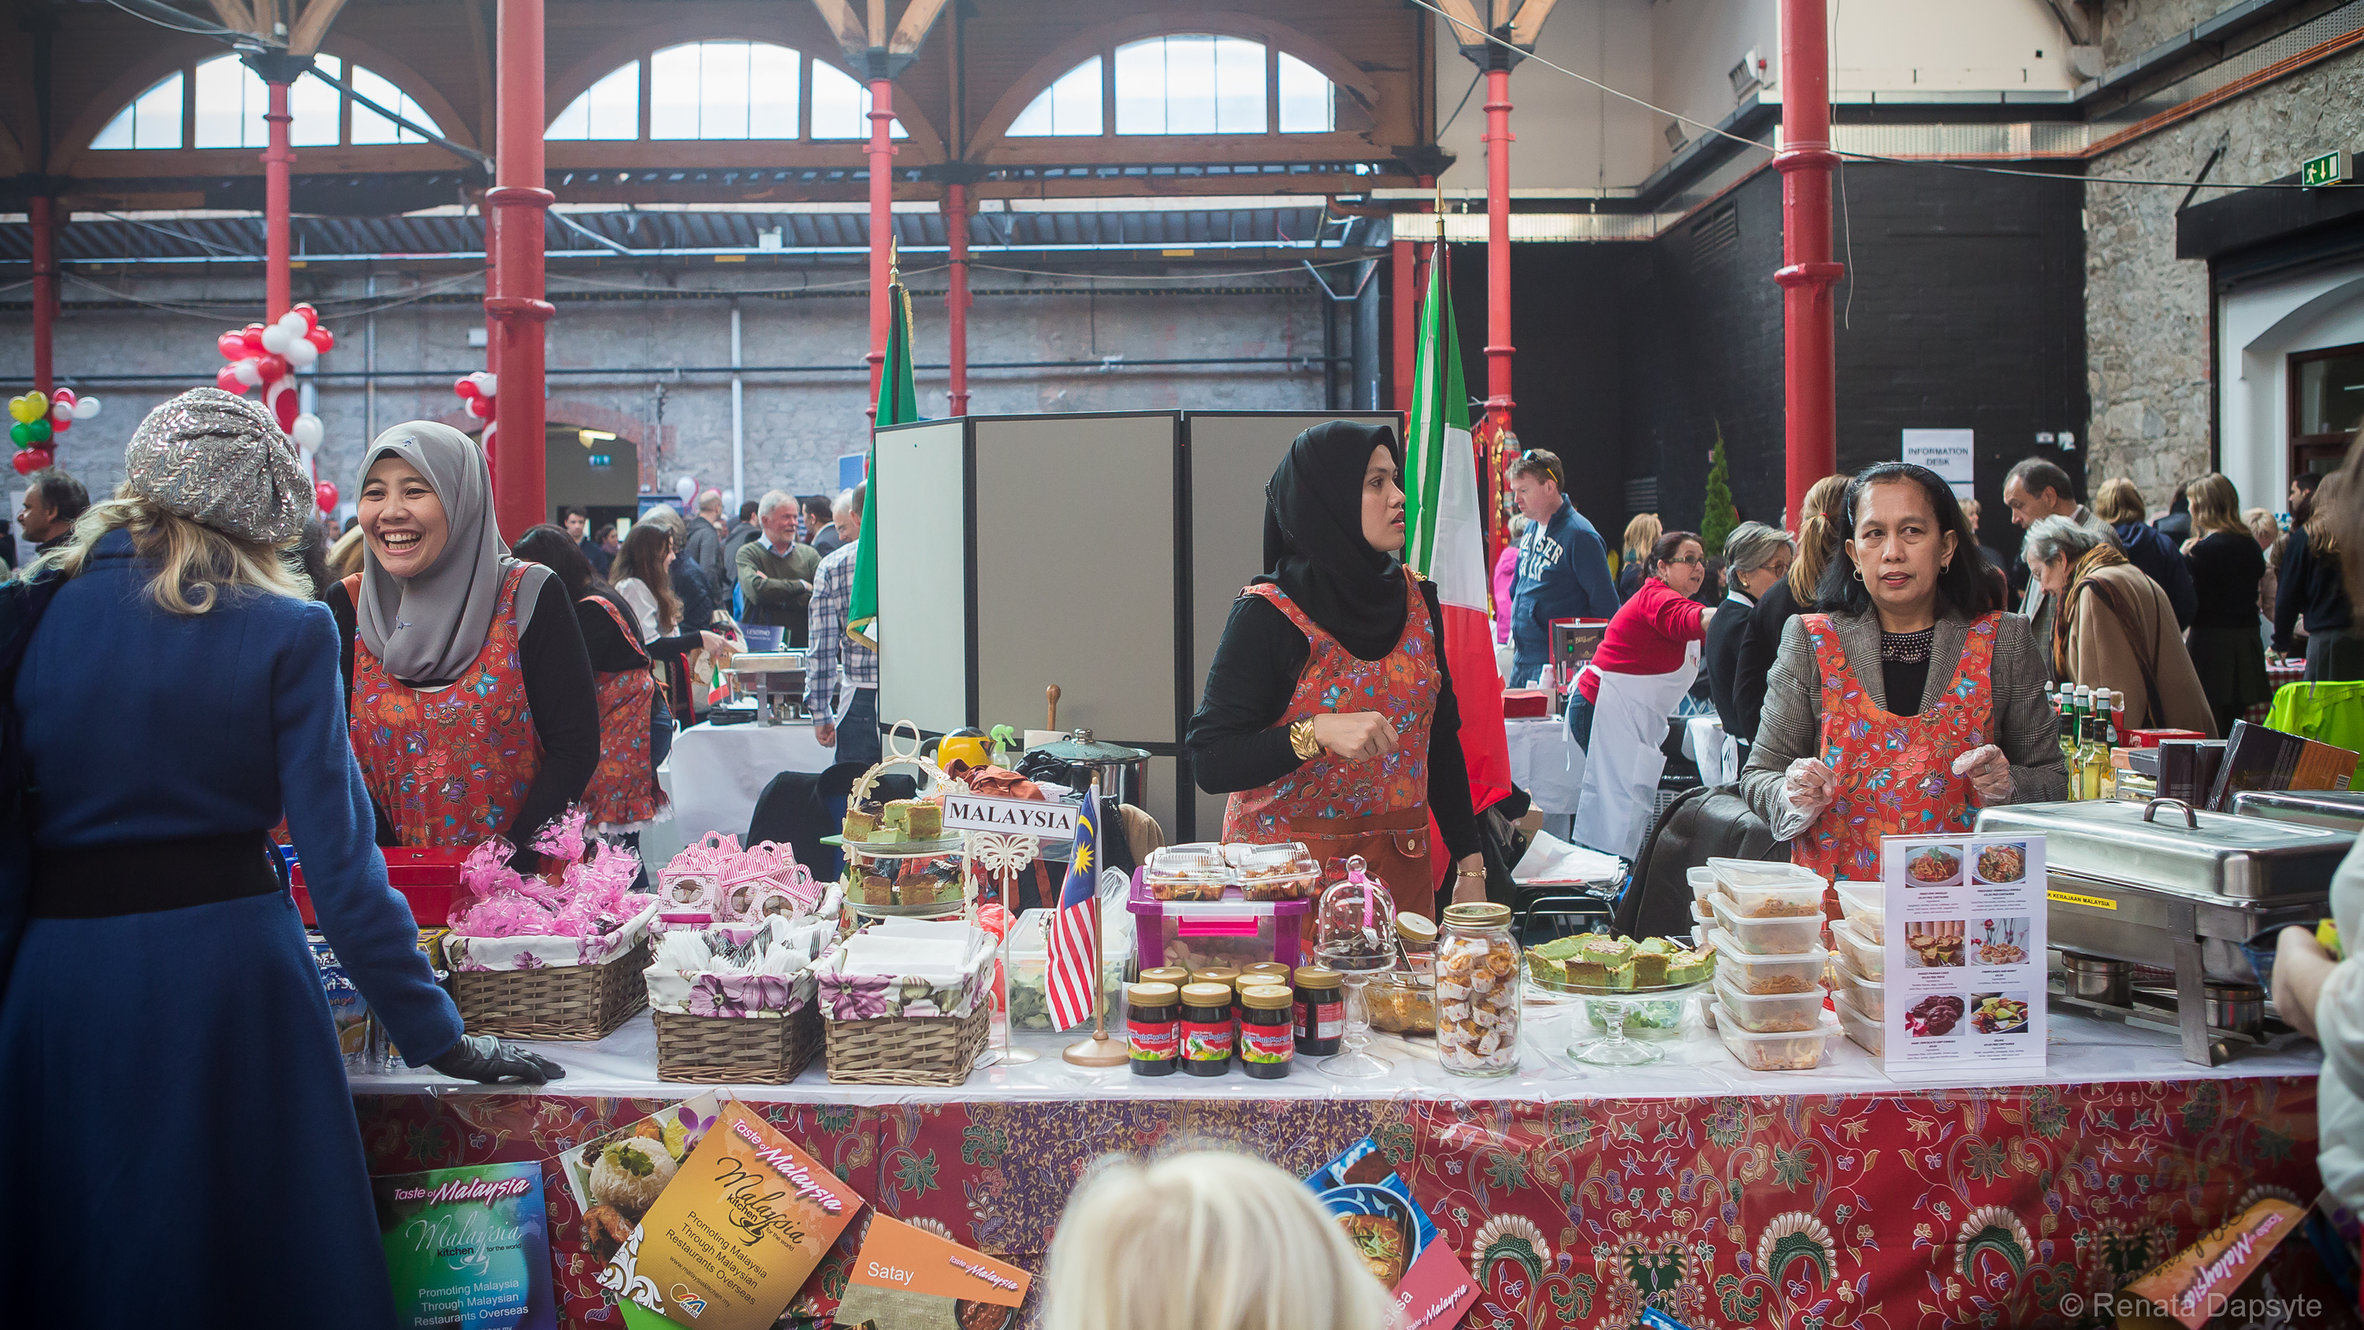 075_International Charity Bazaar Dublin 2013.JPG